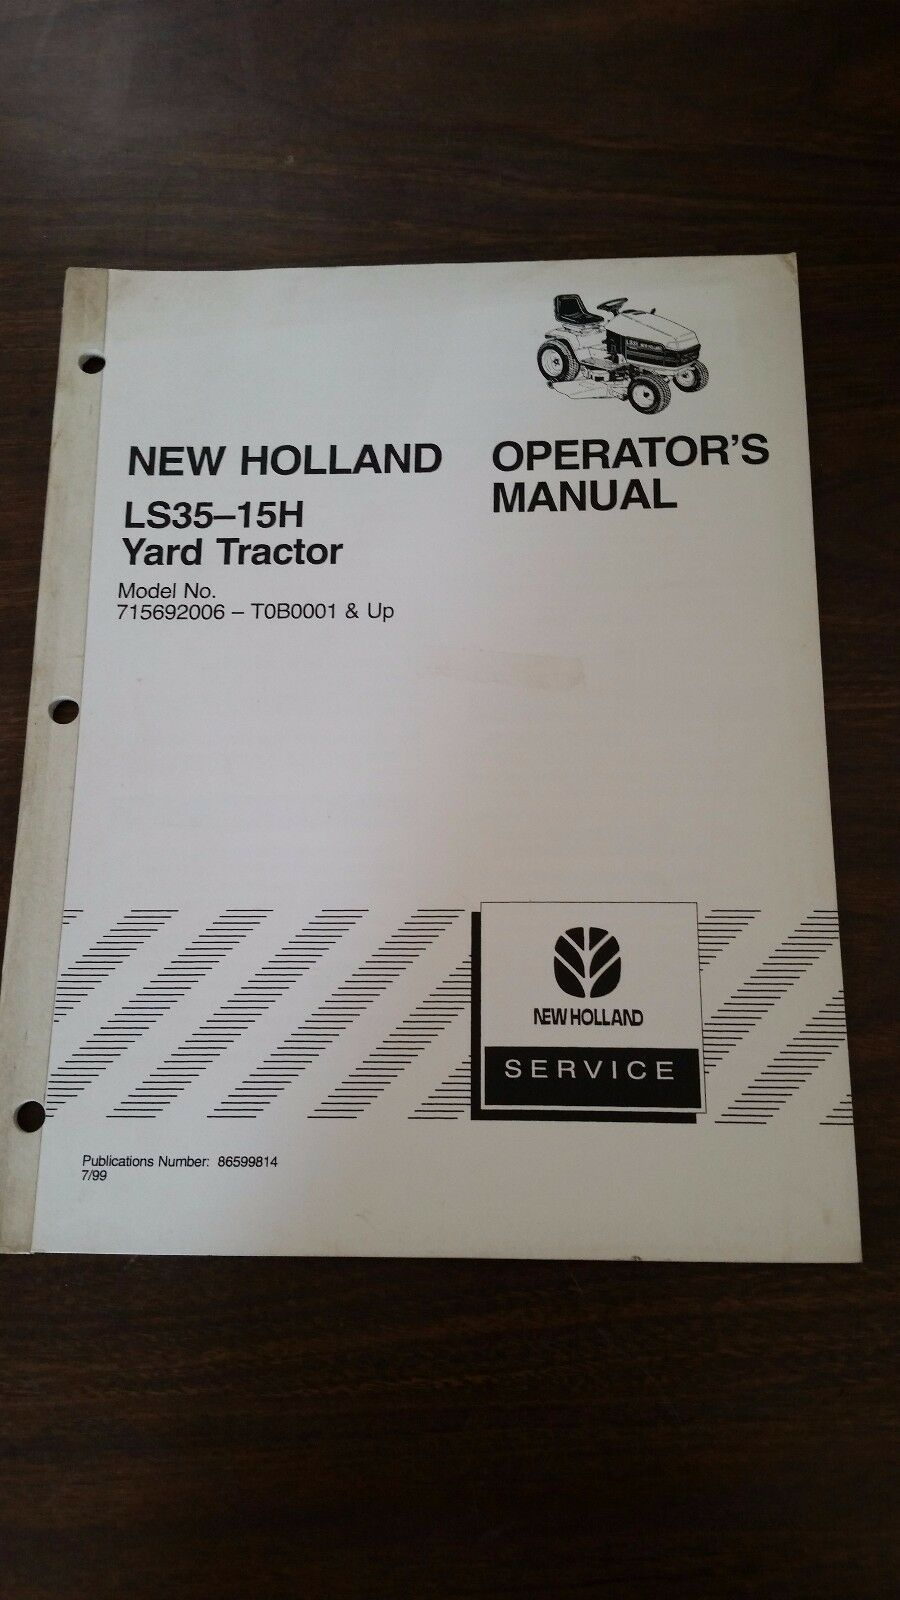 new holland ls35 yard tractor operator s manual part 86599814 rh picclick com New Holland Workmaster New Holland Workmaster